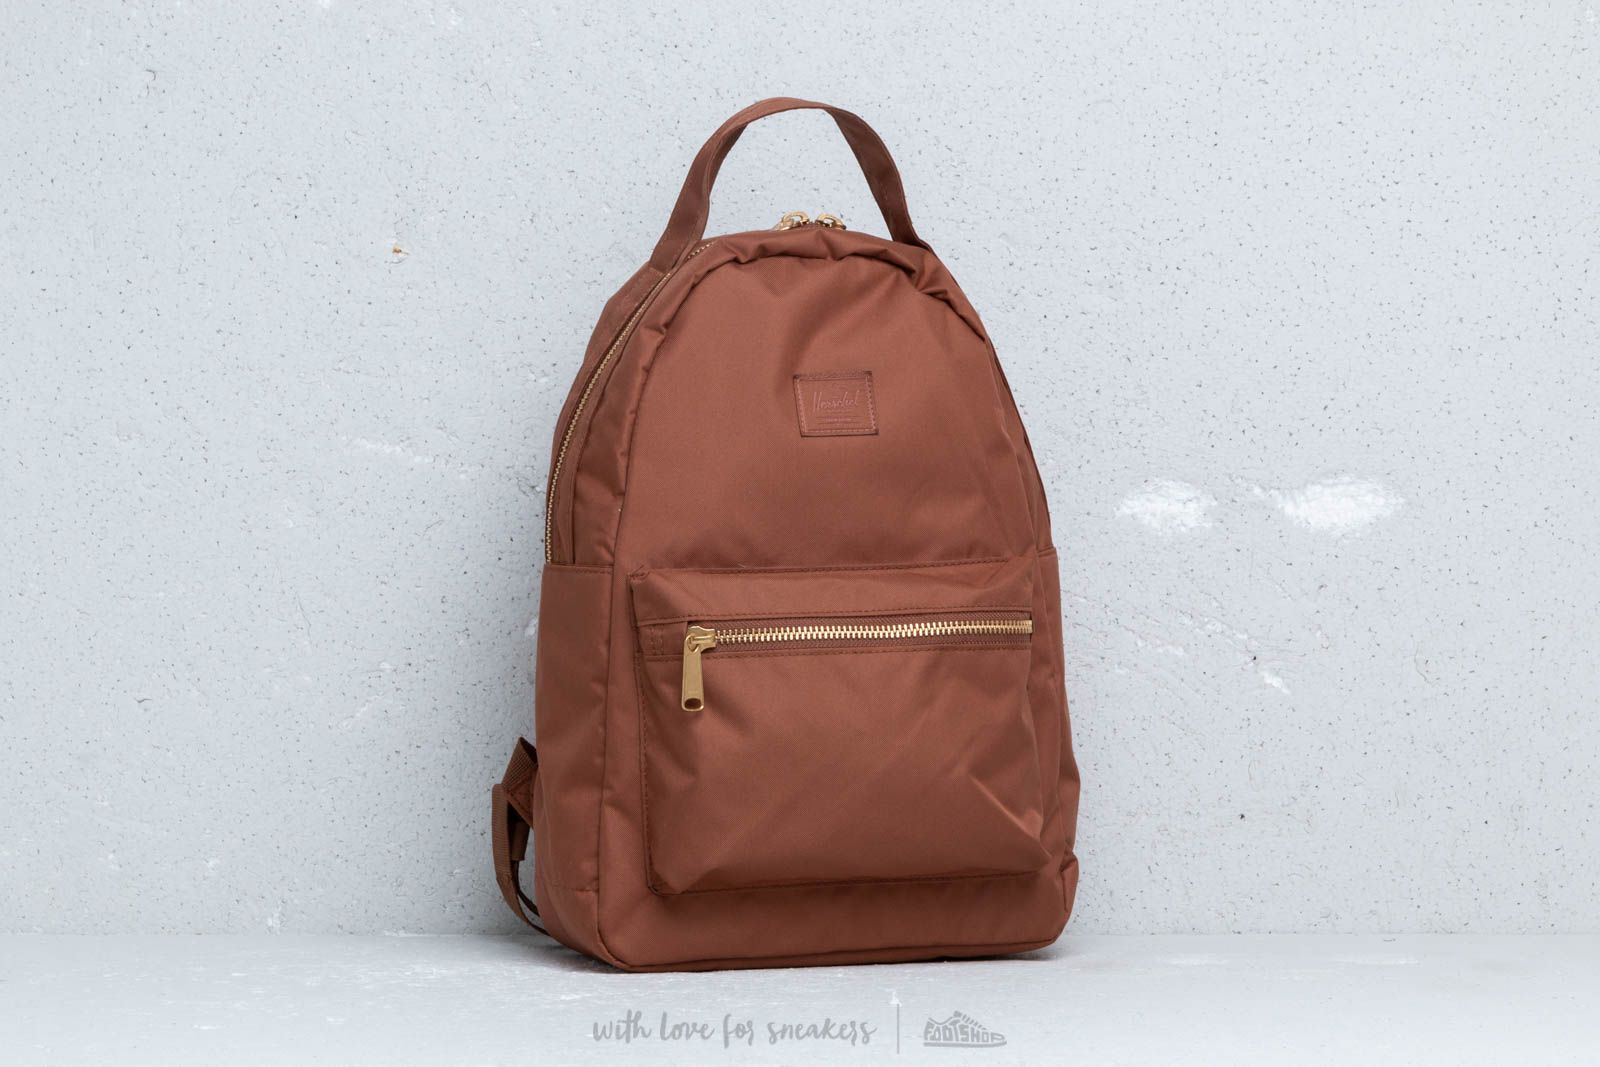 Herschel Supply Co. Light Nova Backpack